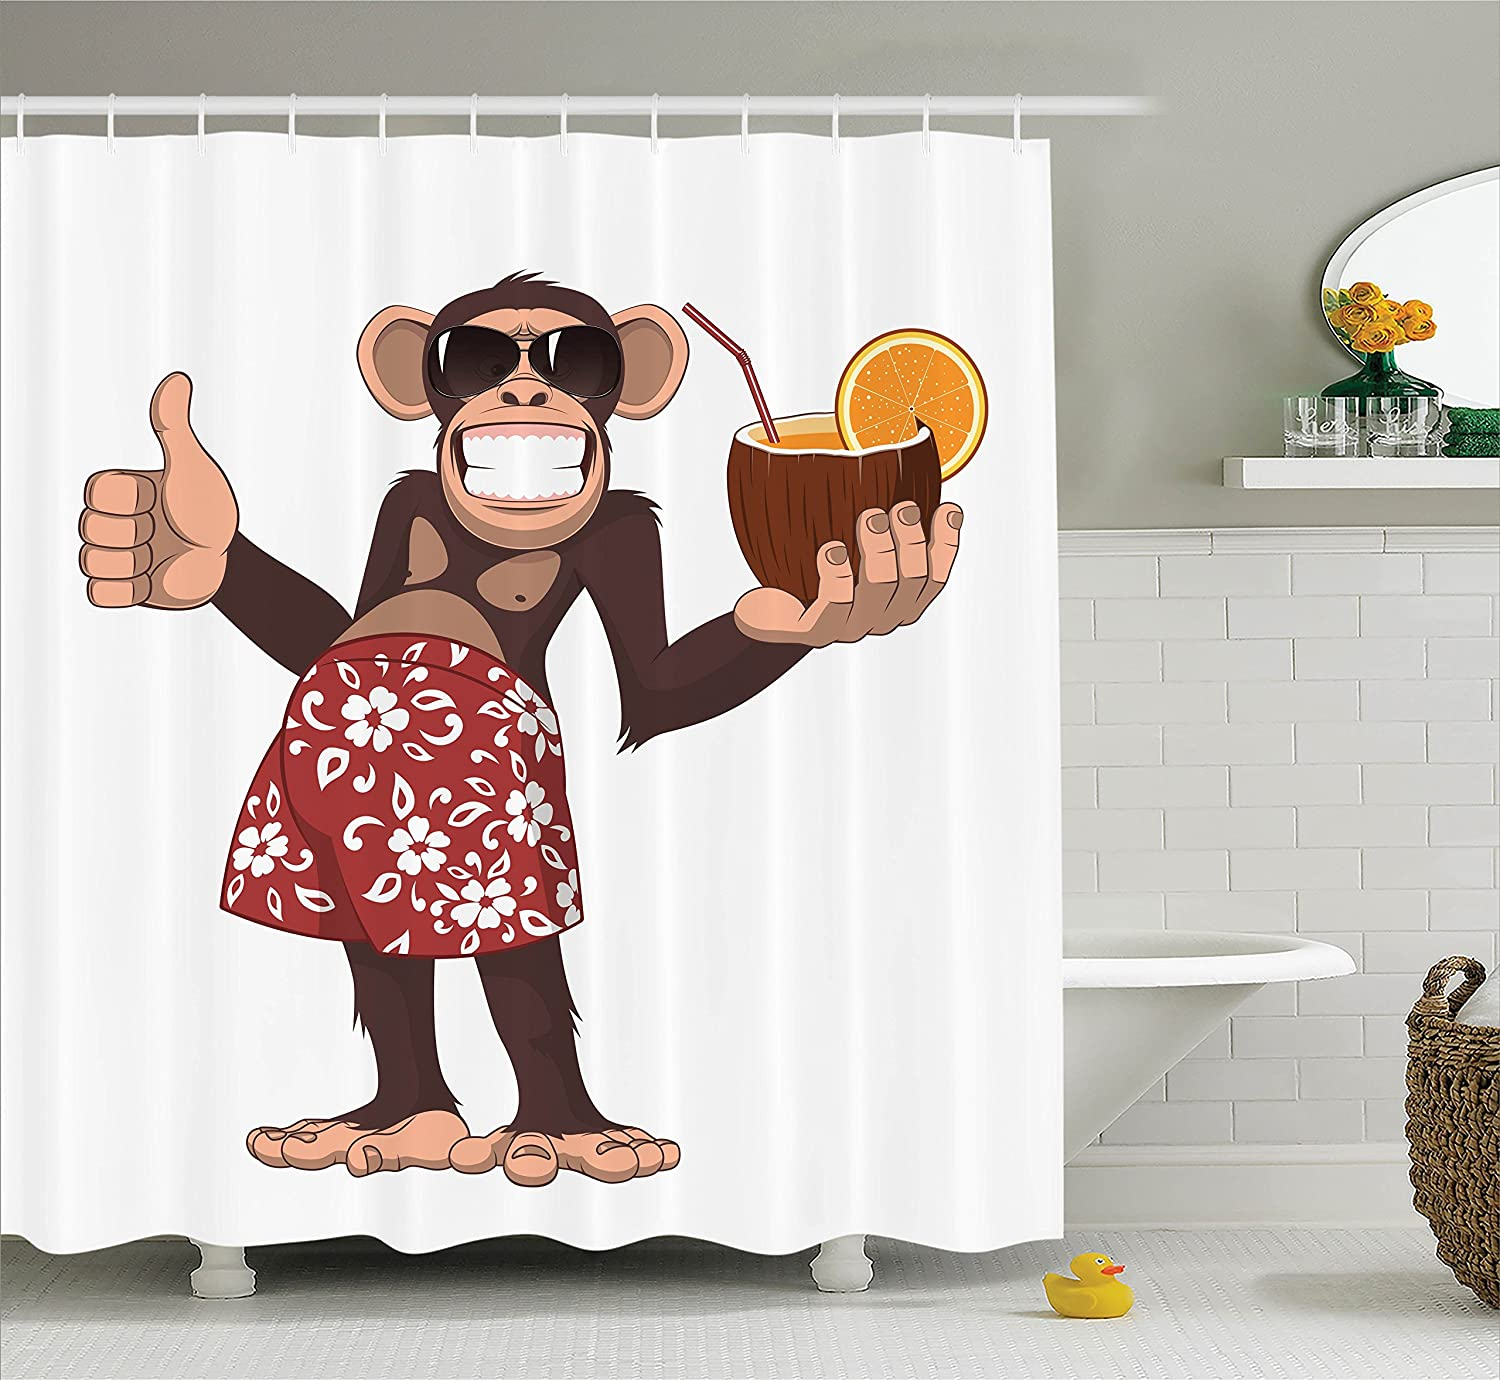 Happy Chimpanzee Holding a Cocktail and Smiling Giggle Ape Cheerful Comic Art Ambesonne Cartoon Decor Collection 75 Inches Long Polyester Fabric Bathroom Shower Curtain Brown Orange Red